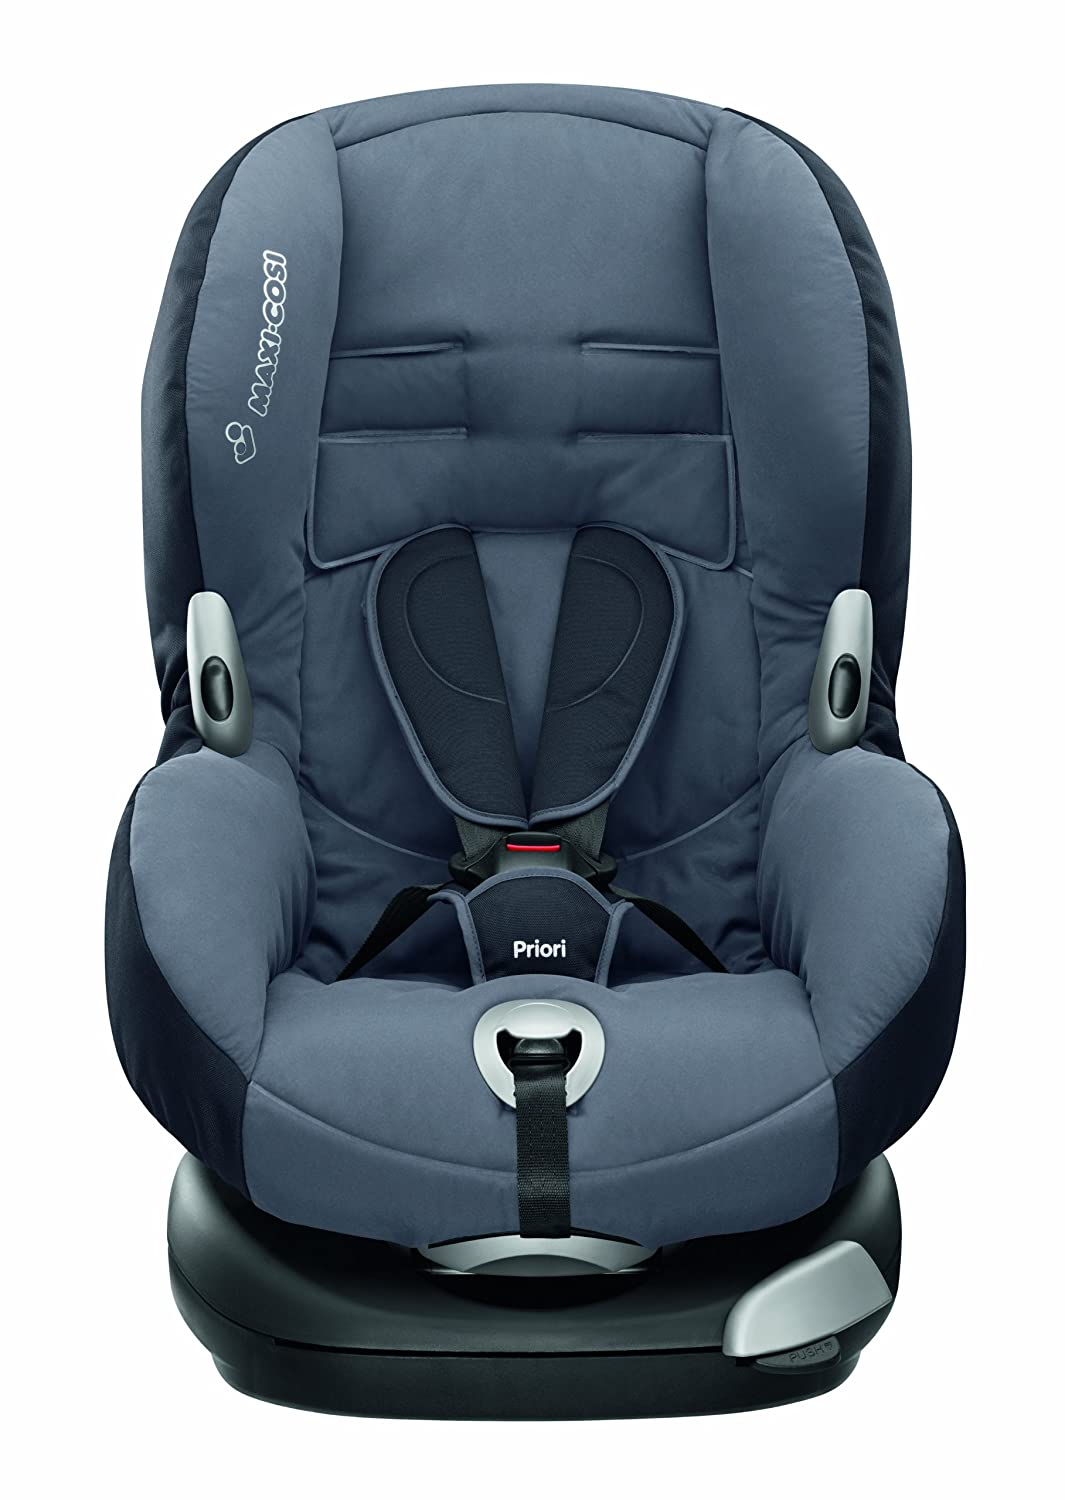 replacement car seat covers for maxi cosi priori velcromag. Black Bedroom Furniture Sets. Home Design Ideas